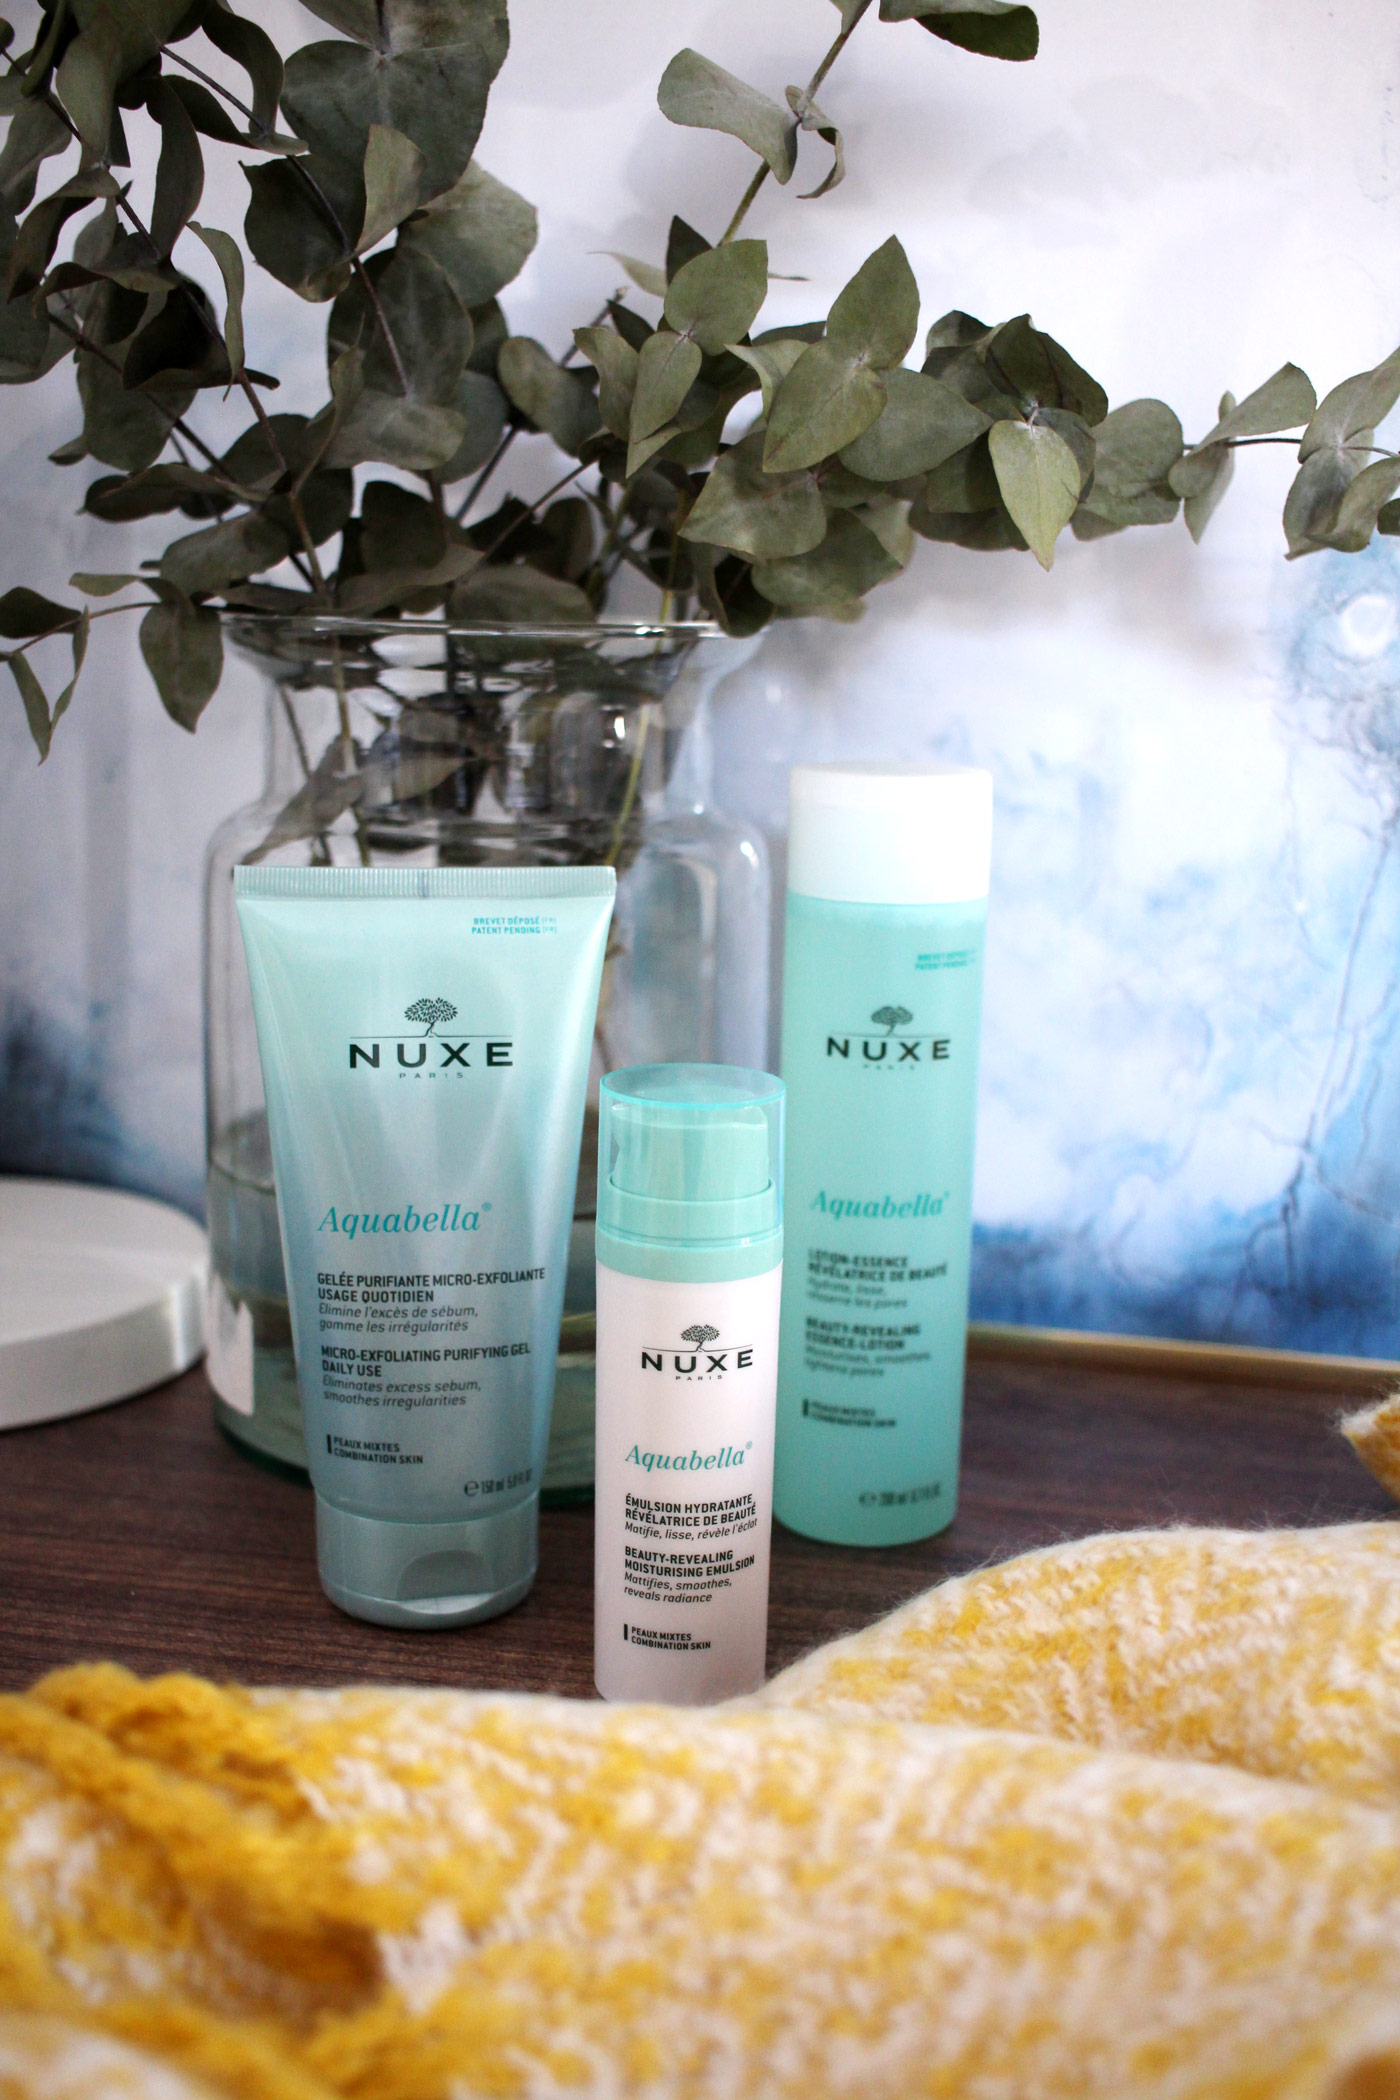 nuxe-aquabella-skincare-range-review